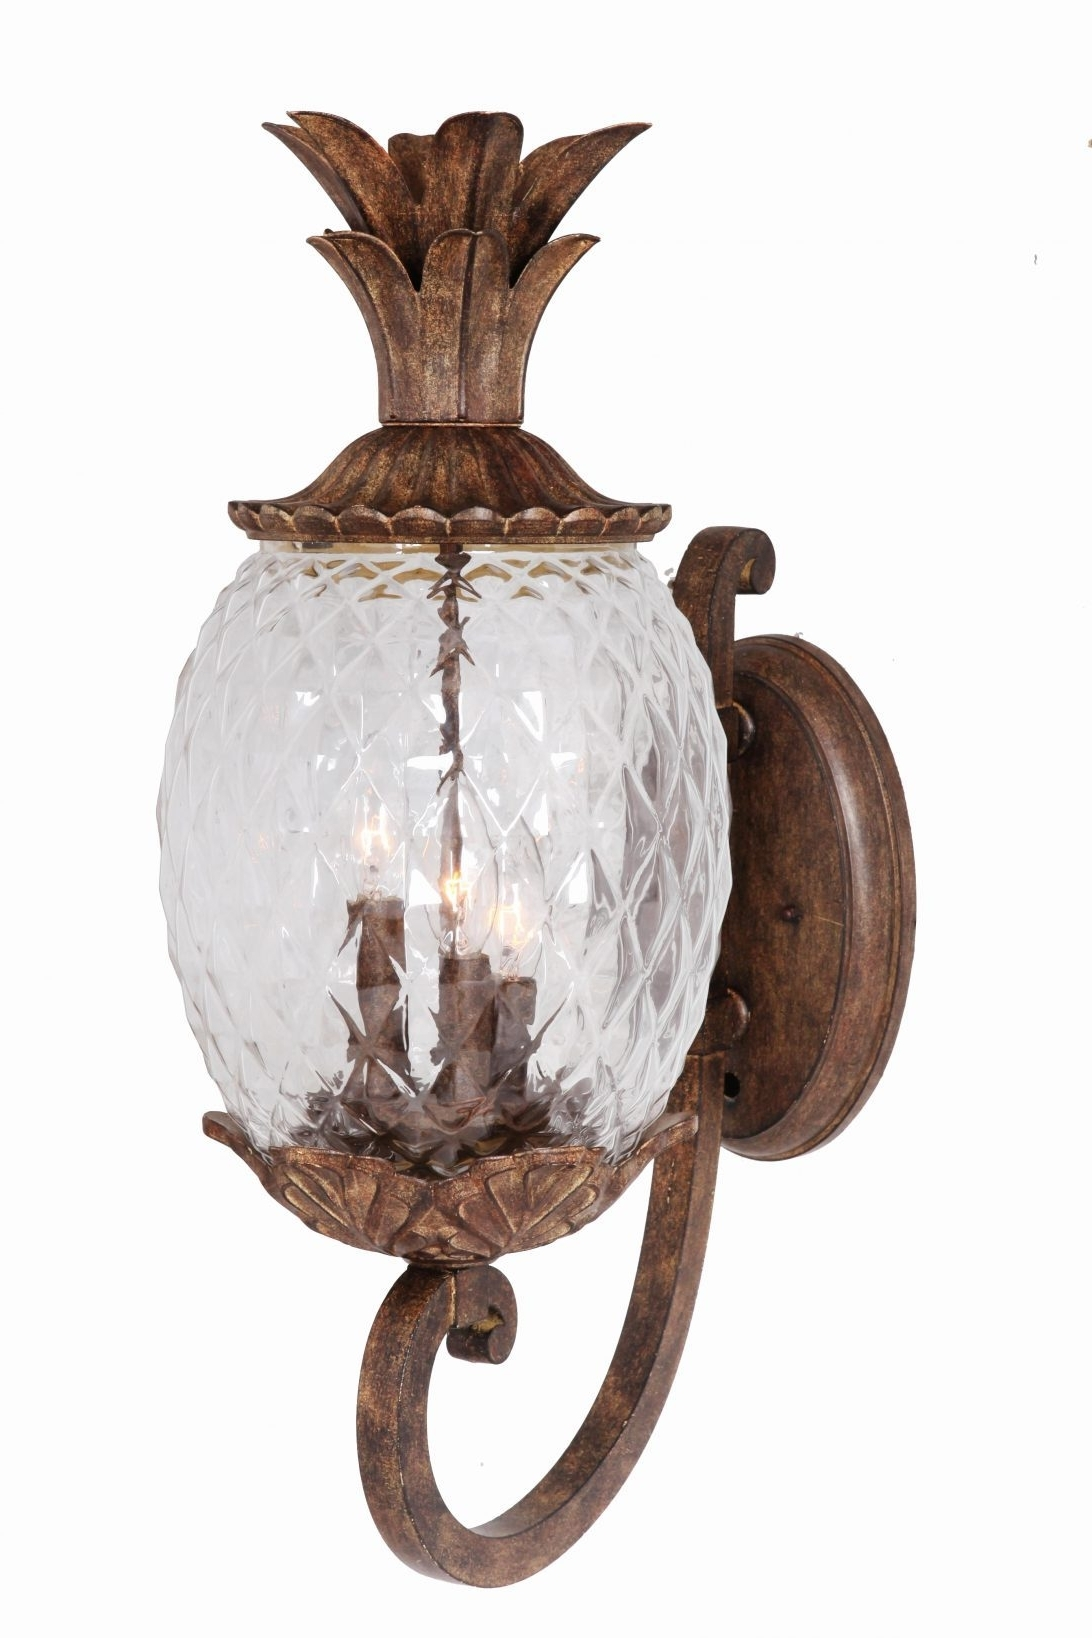 Pineapple Lamp Post Light Furniture Four Different Types Outdoor Regarding Famous Outdoor Pineapple Lanterns (Gallery 18 of 20)